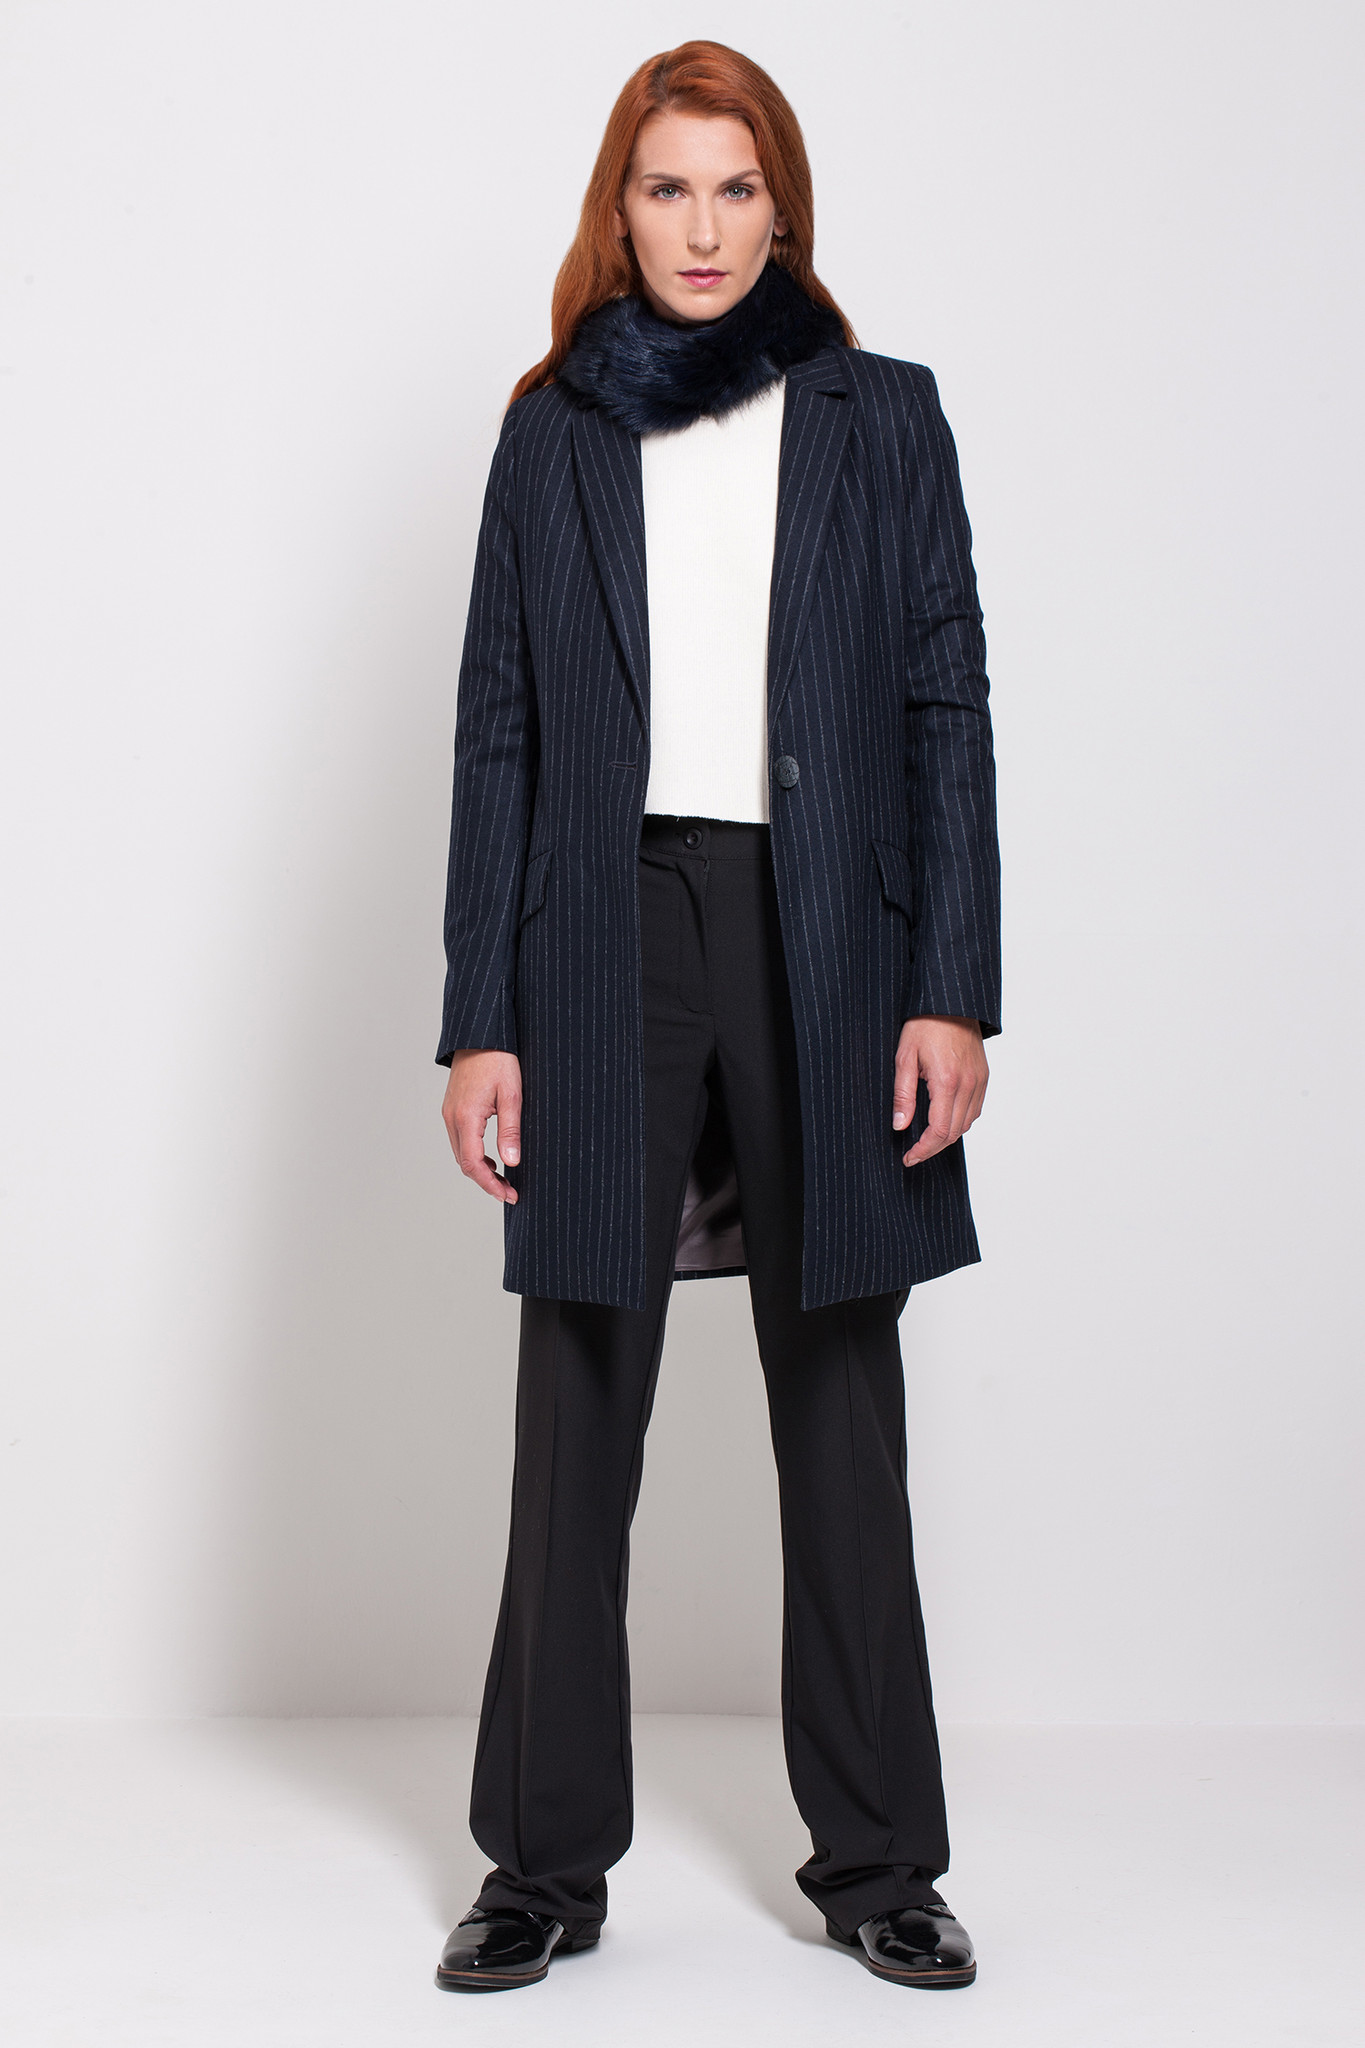 Navy wool and cashmere stripe long jacket Samanta by Coat Creators.